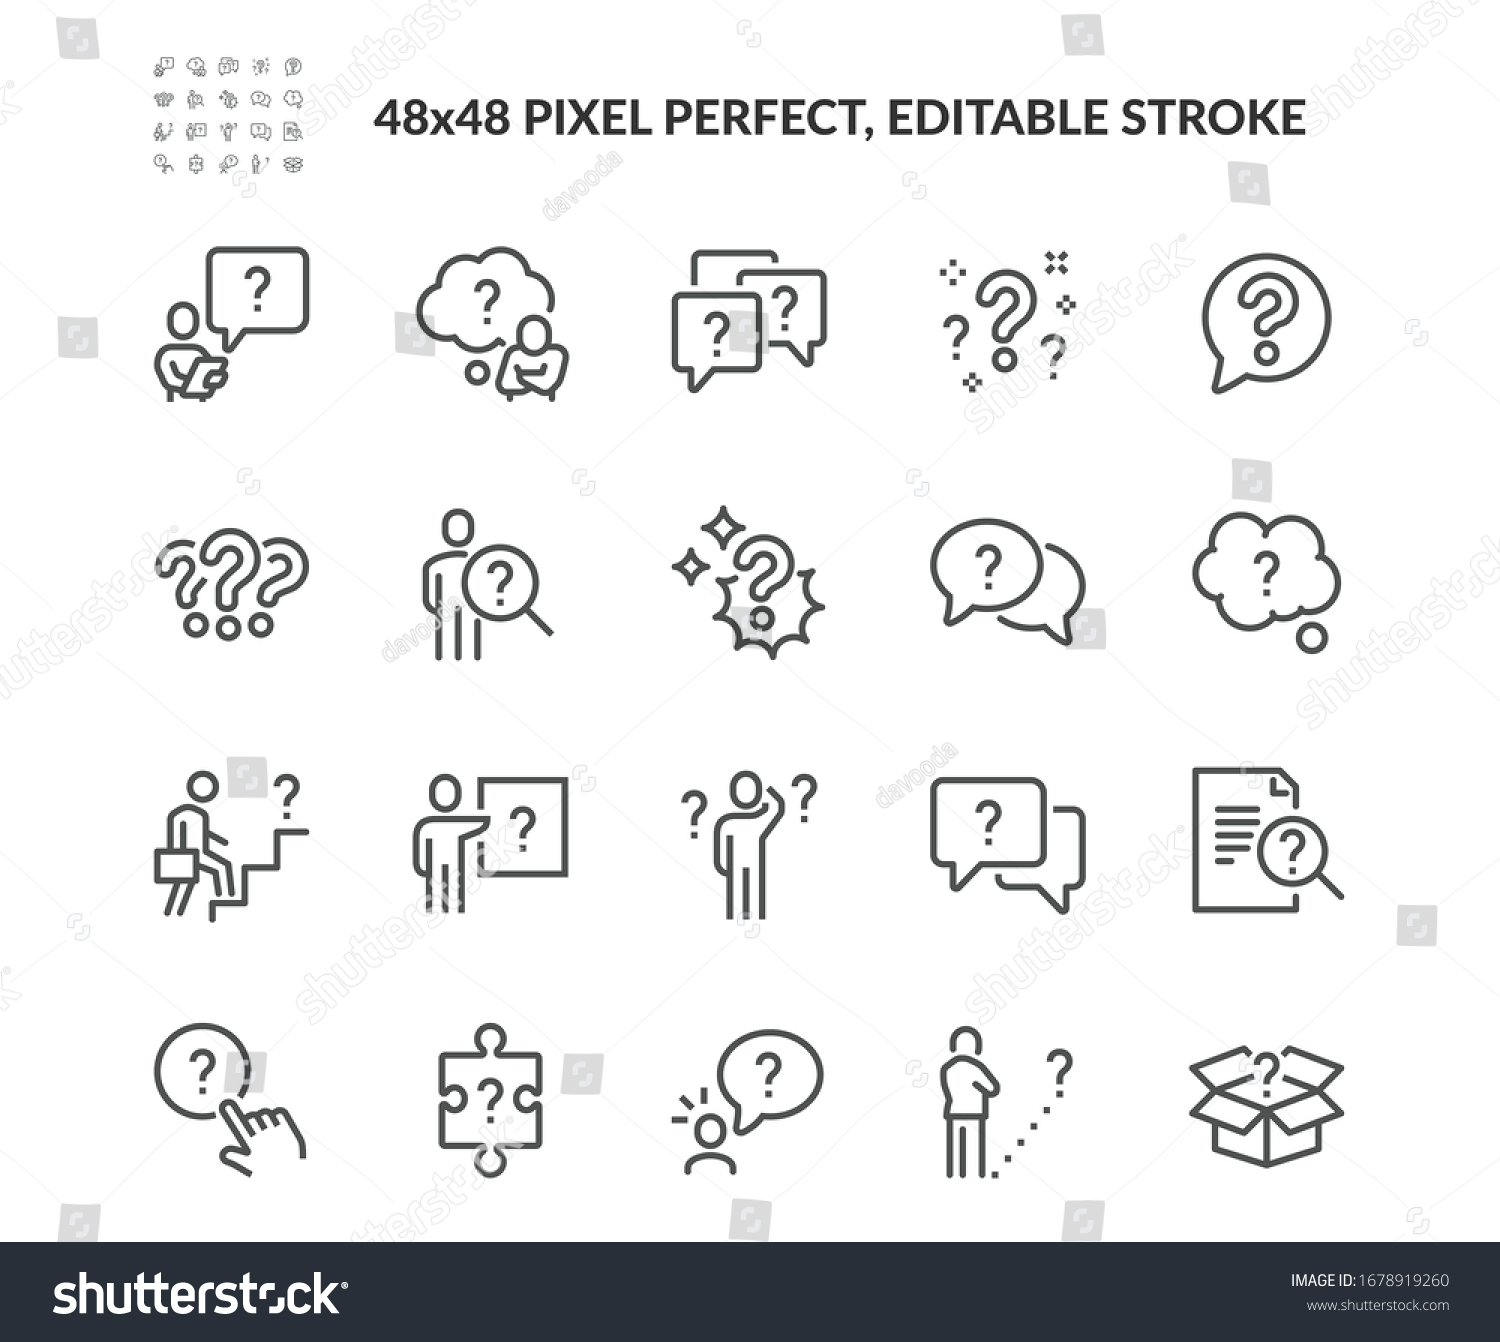 Simple Set of Question Related Vector Line Icons. Contains such Icons as Puzzle, Confused Man, Question Mark and more. Editable Stroke. 48x48 Pixel Perfect. #1678919260